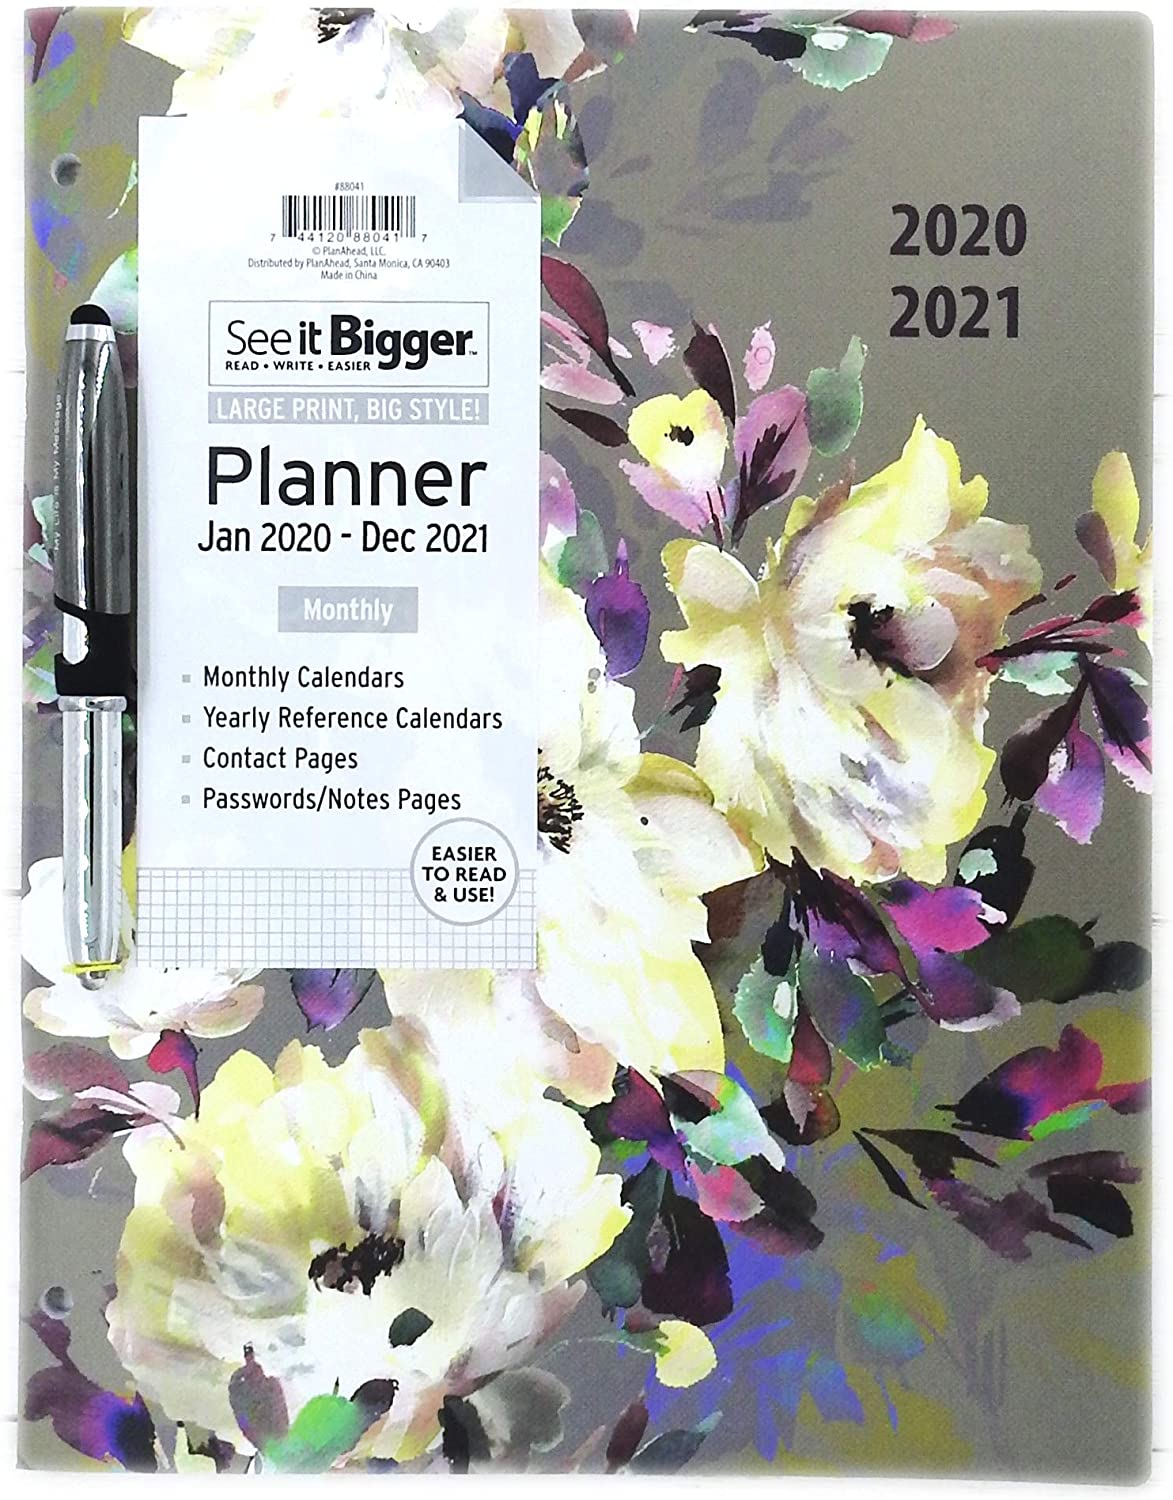 "PlanAhead Home/Office 2-Year Monthly Planner, January 2020 - December 2021, 8.5 x 11 Inches and Ultima Stylus Inspirational Pen ""My Life is My Message"". (Flowers on Grey)"